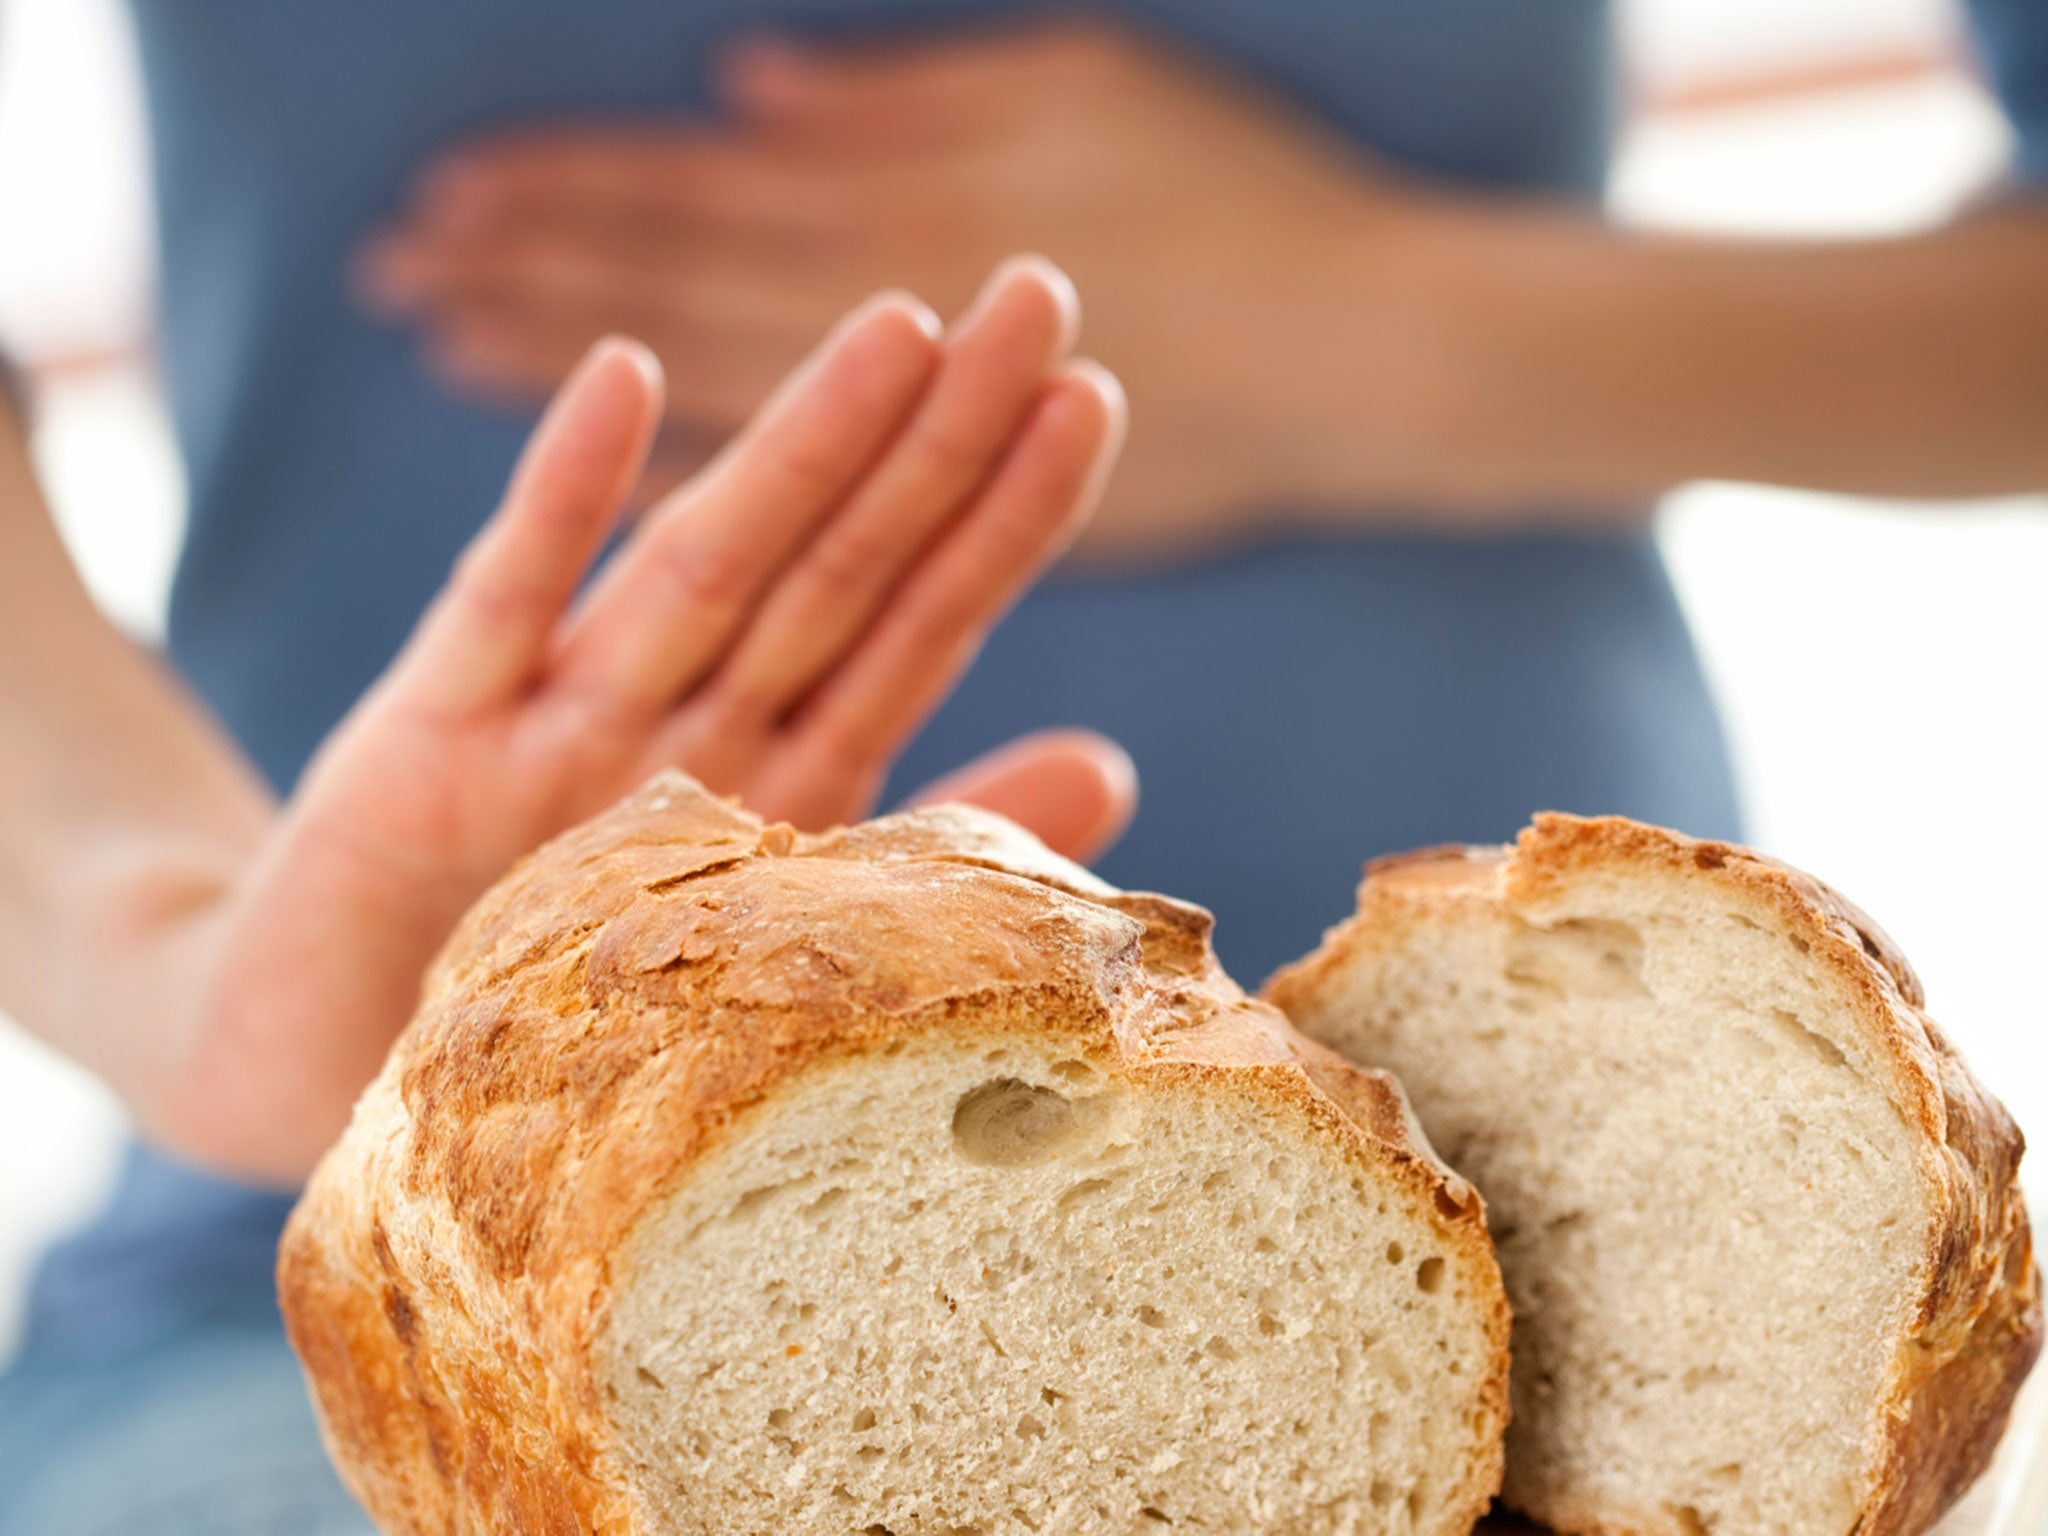 Is bread harmful